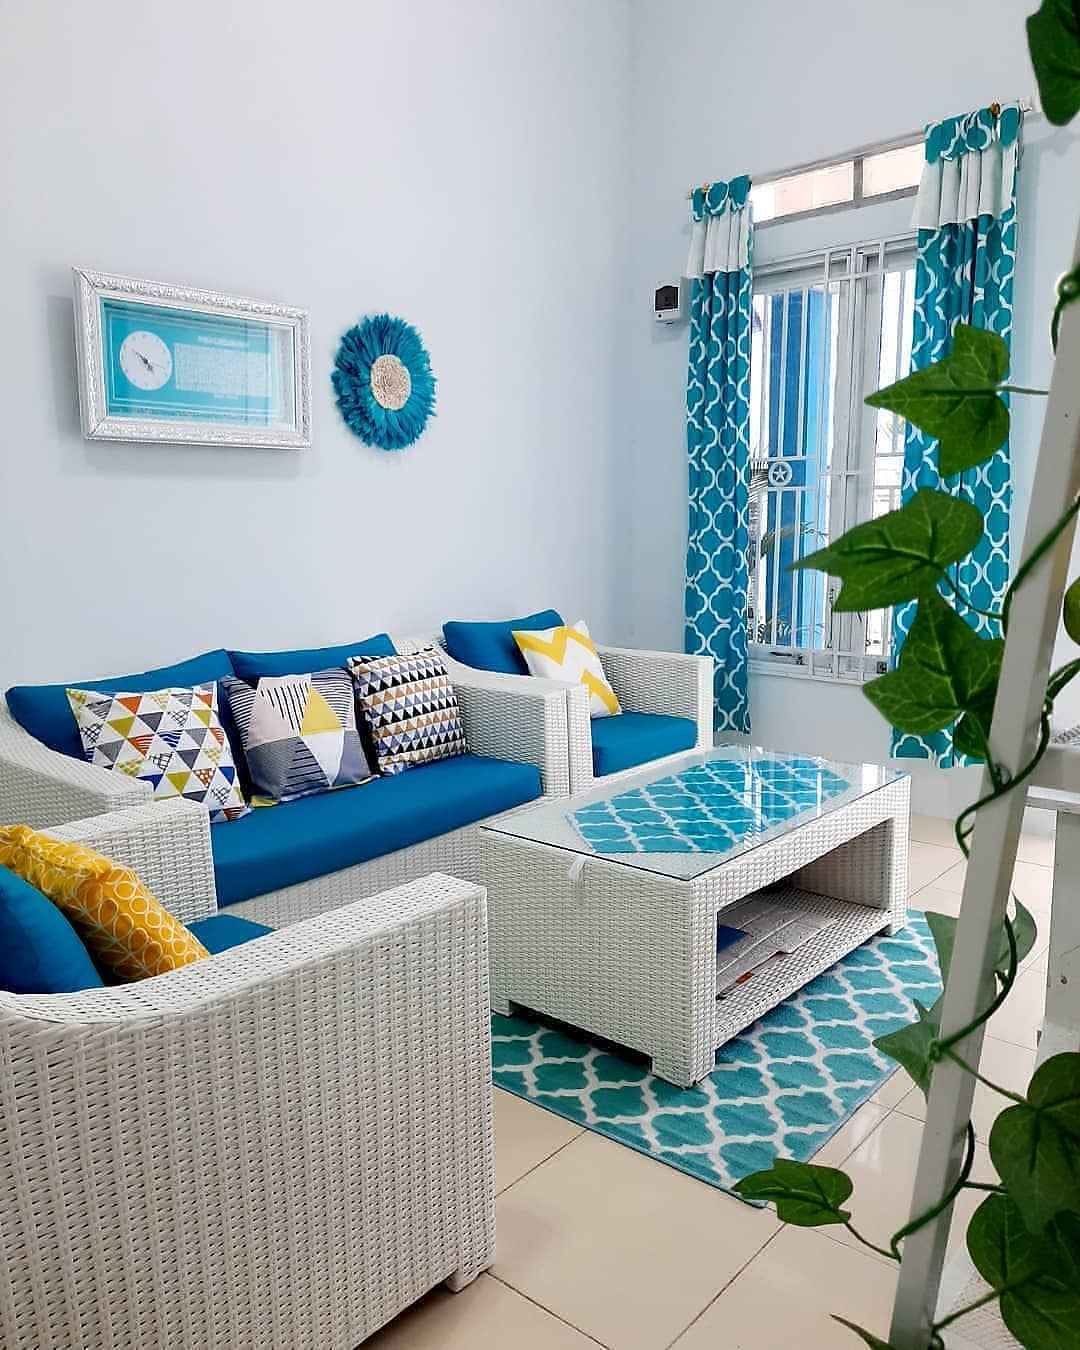 Affordable DIY Home Decor Ideas to Glam Up Your House